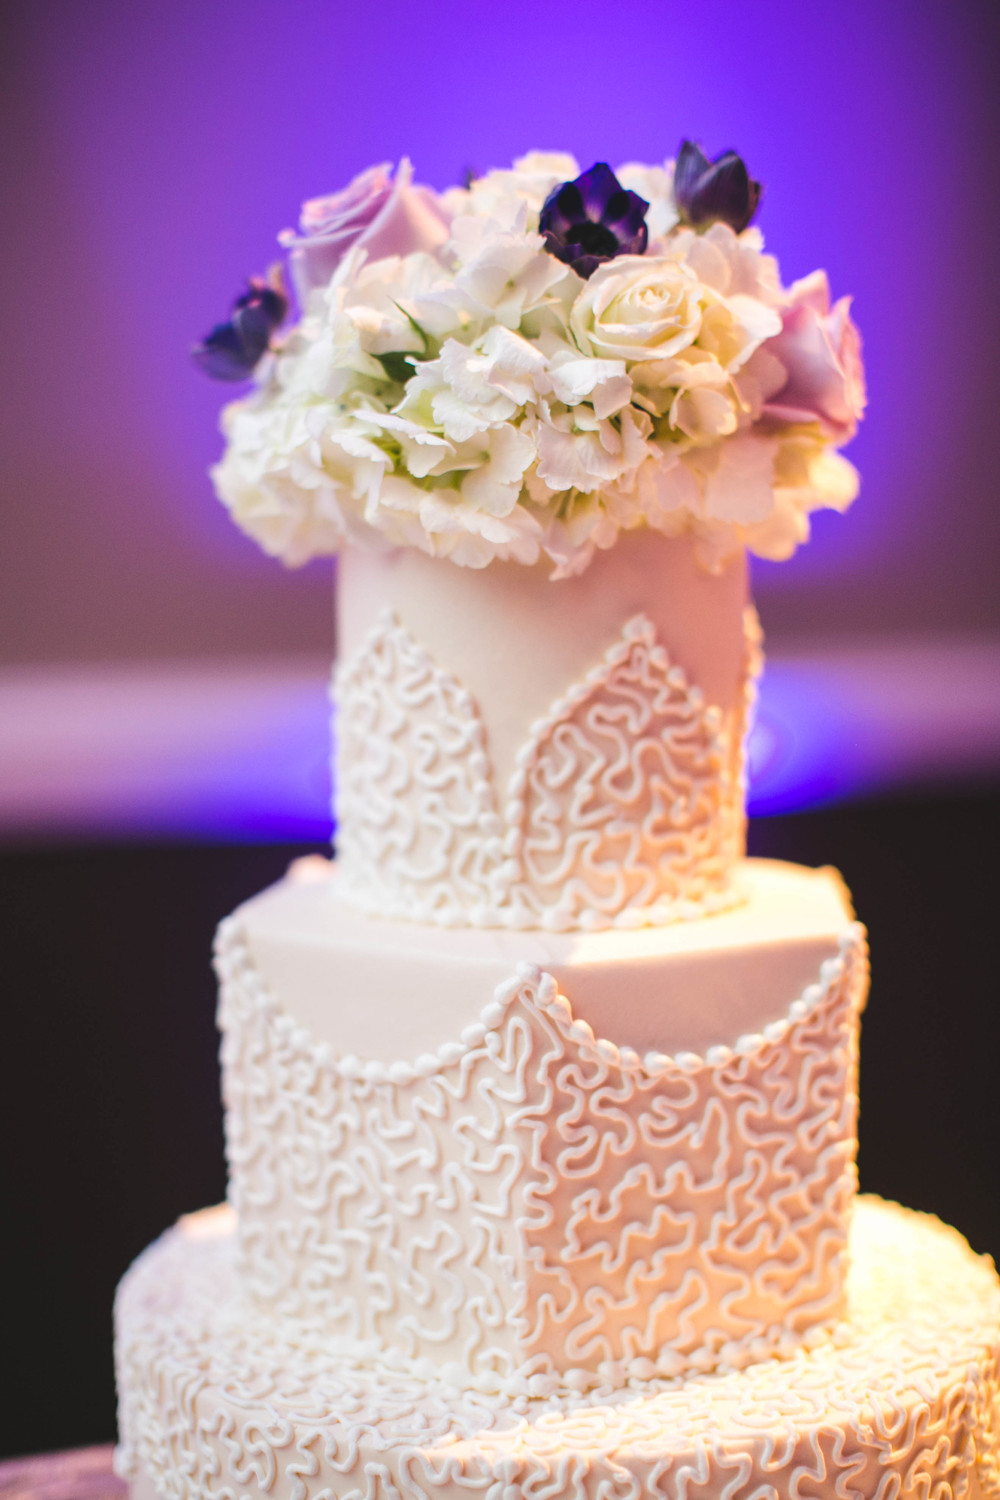 custom-wedding-cake-piped-pearl-detail-texture.jpg